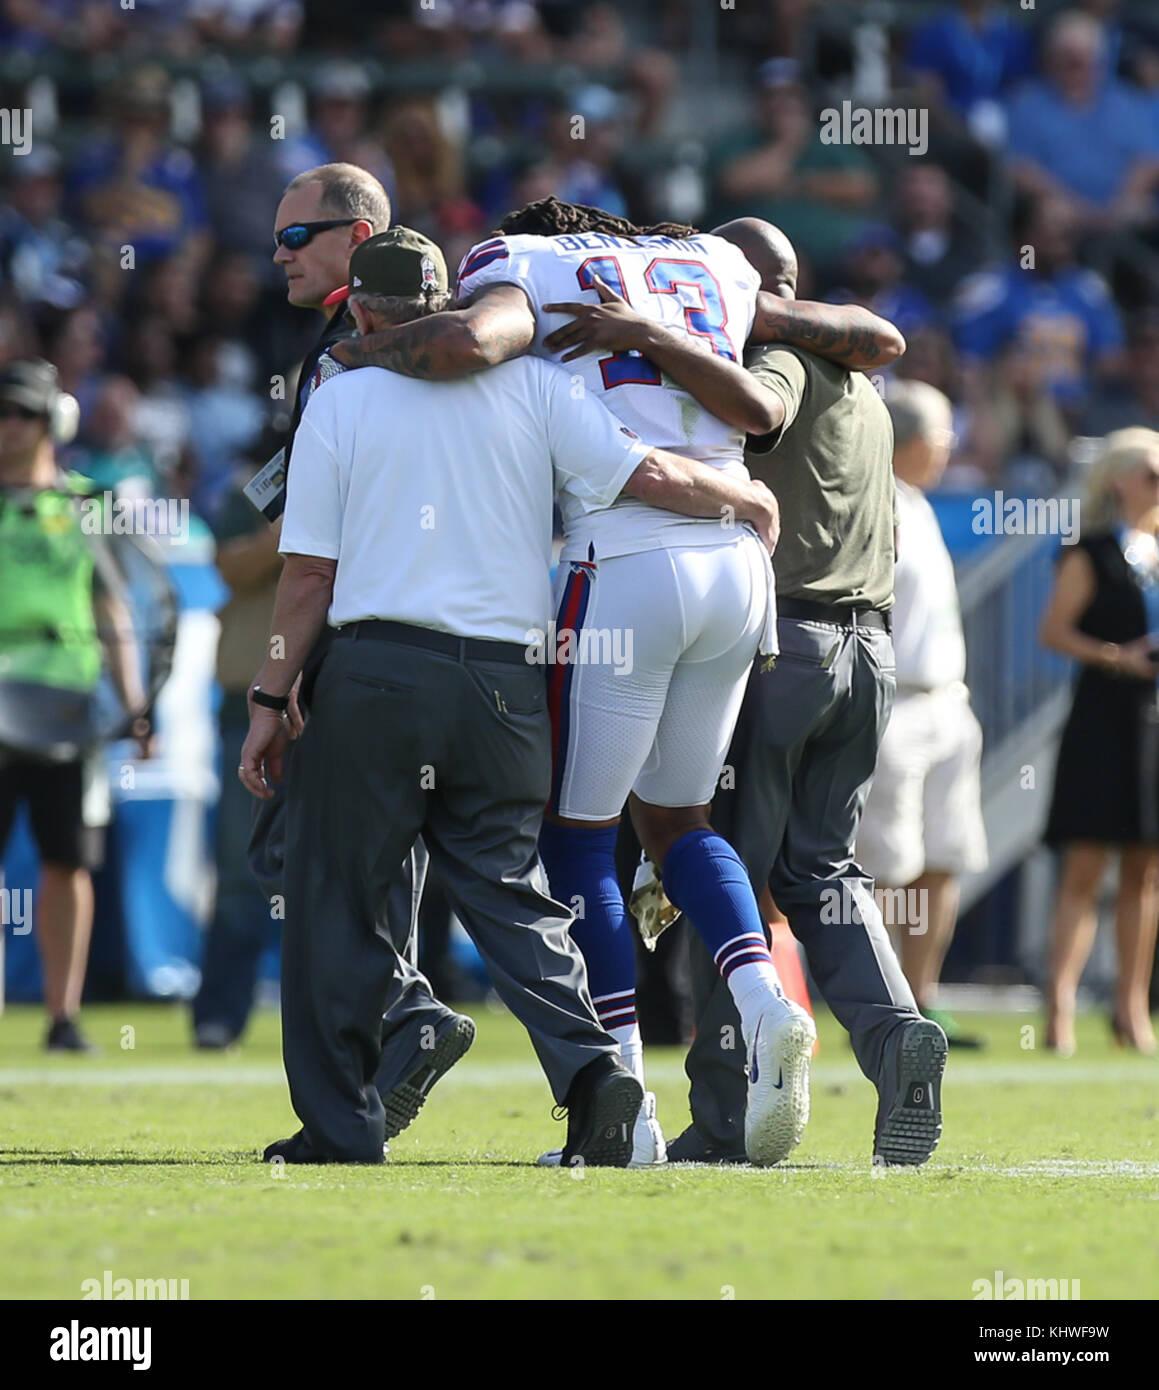 f3ad846d111 Buffalo Bills wide receiver Kelvin Benjamin  13 being helped off the field  during the NFL Buffalo Bills vs Los Angeles Chargers at the Stubhub Center  in ...